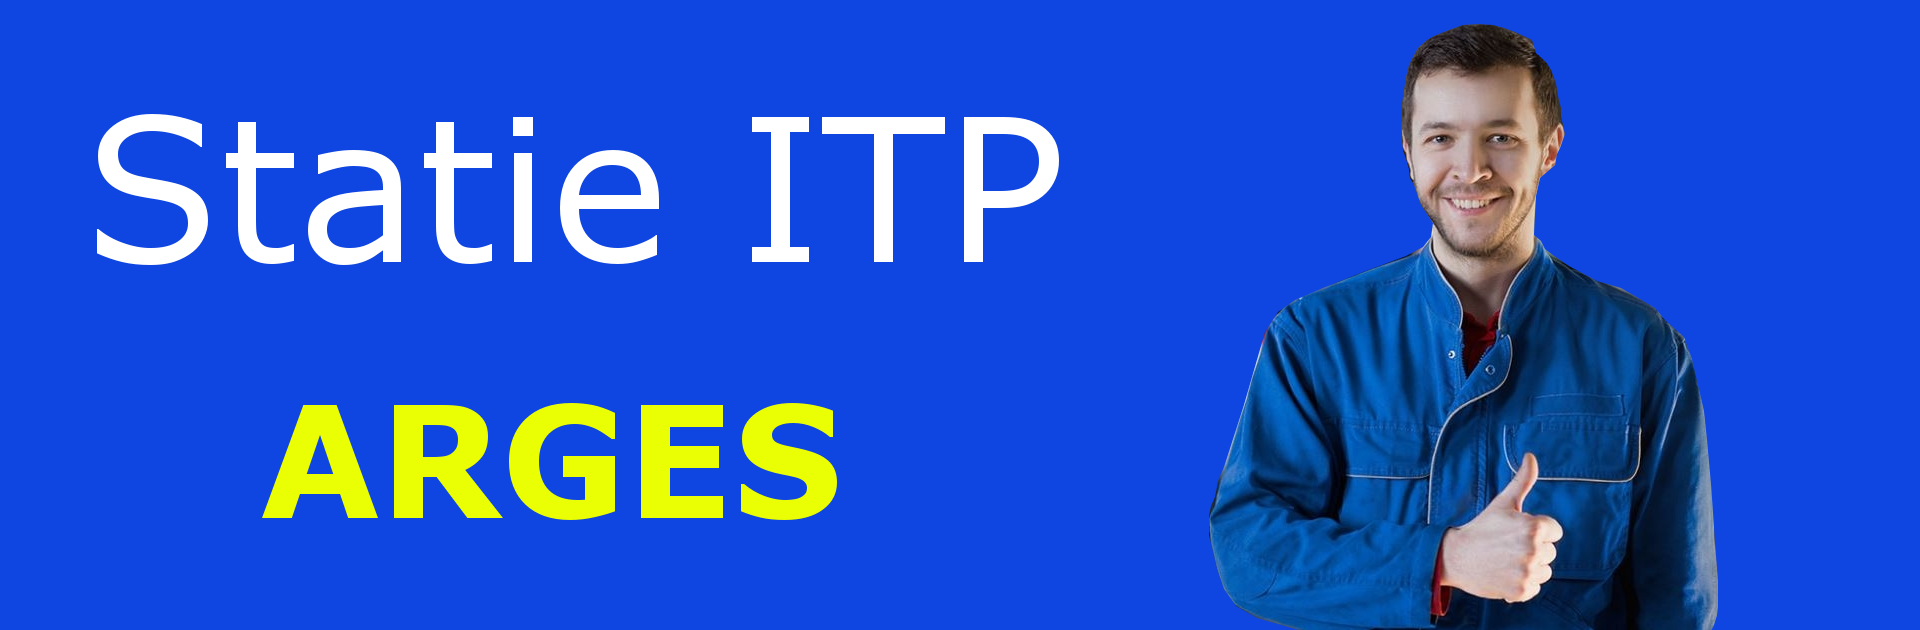 Banner ITP ARGES